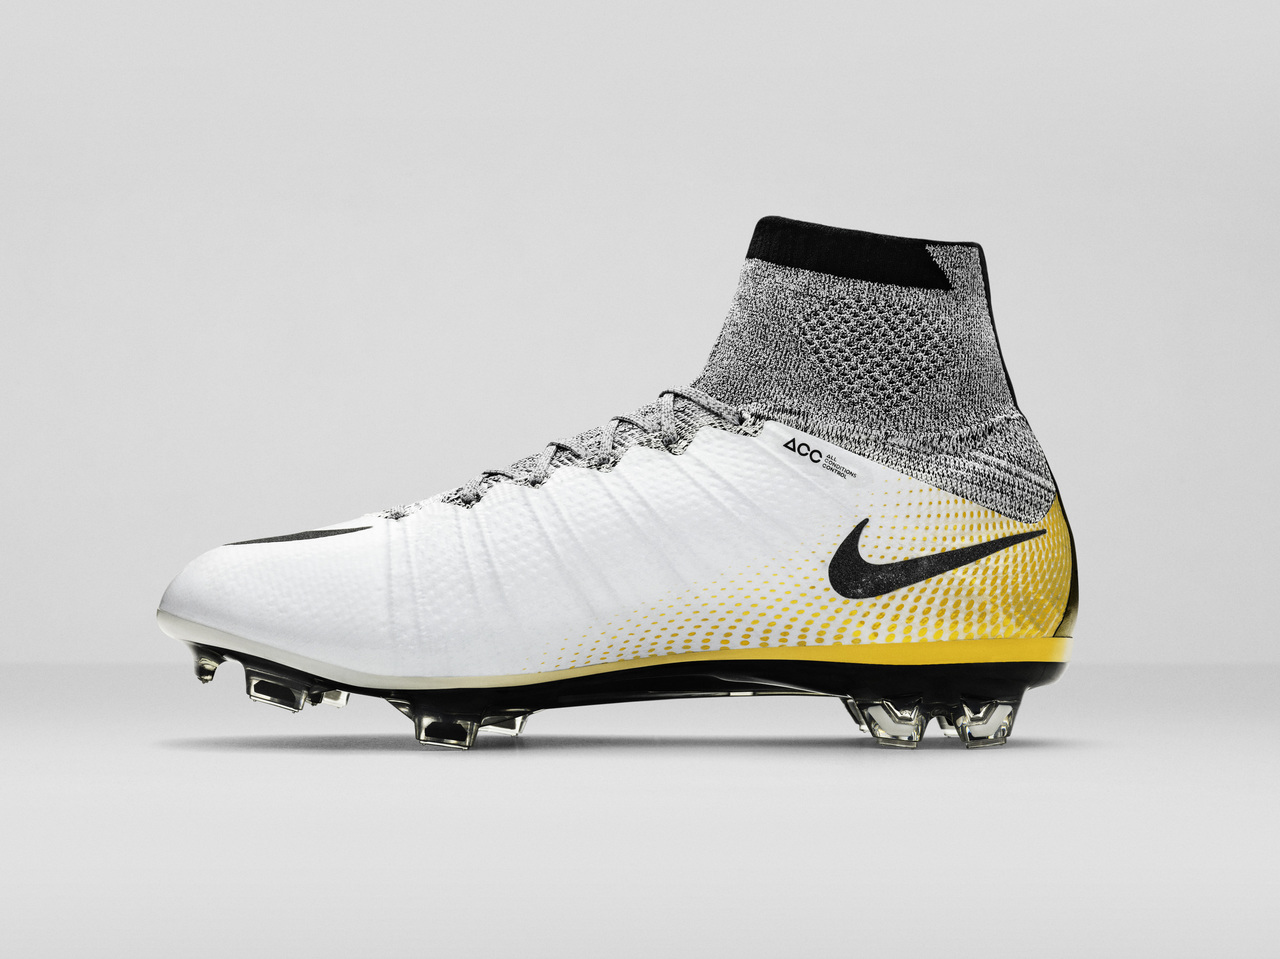 nike mercurial superfly cr7 324k gold football boots. Black Bedroom Furniture Sets. Home Design Ideas